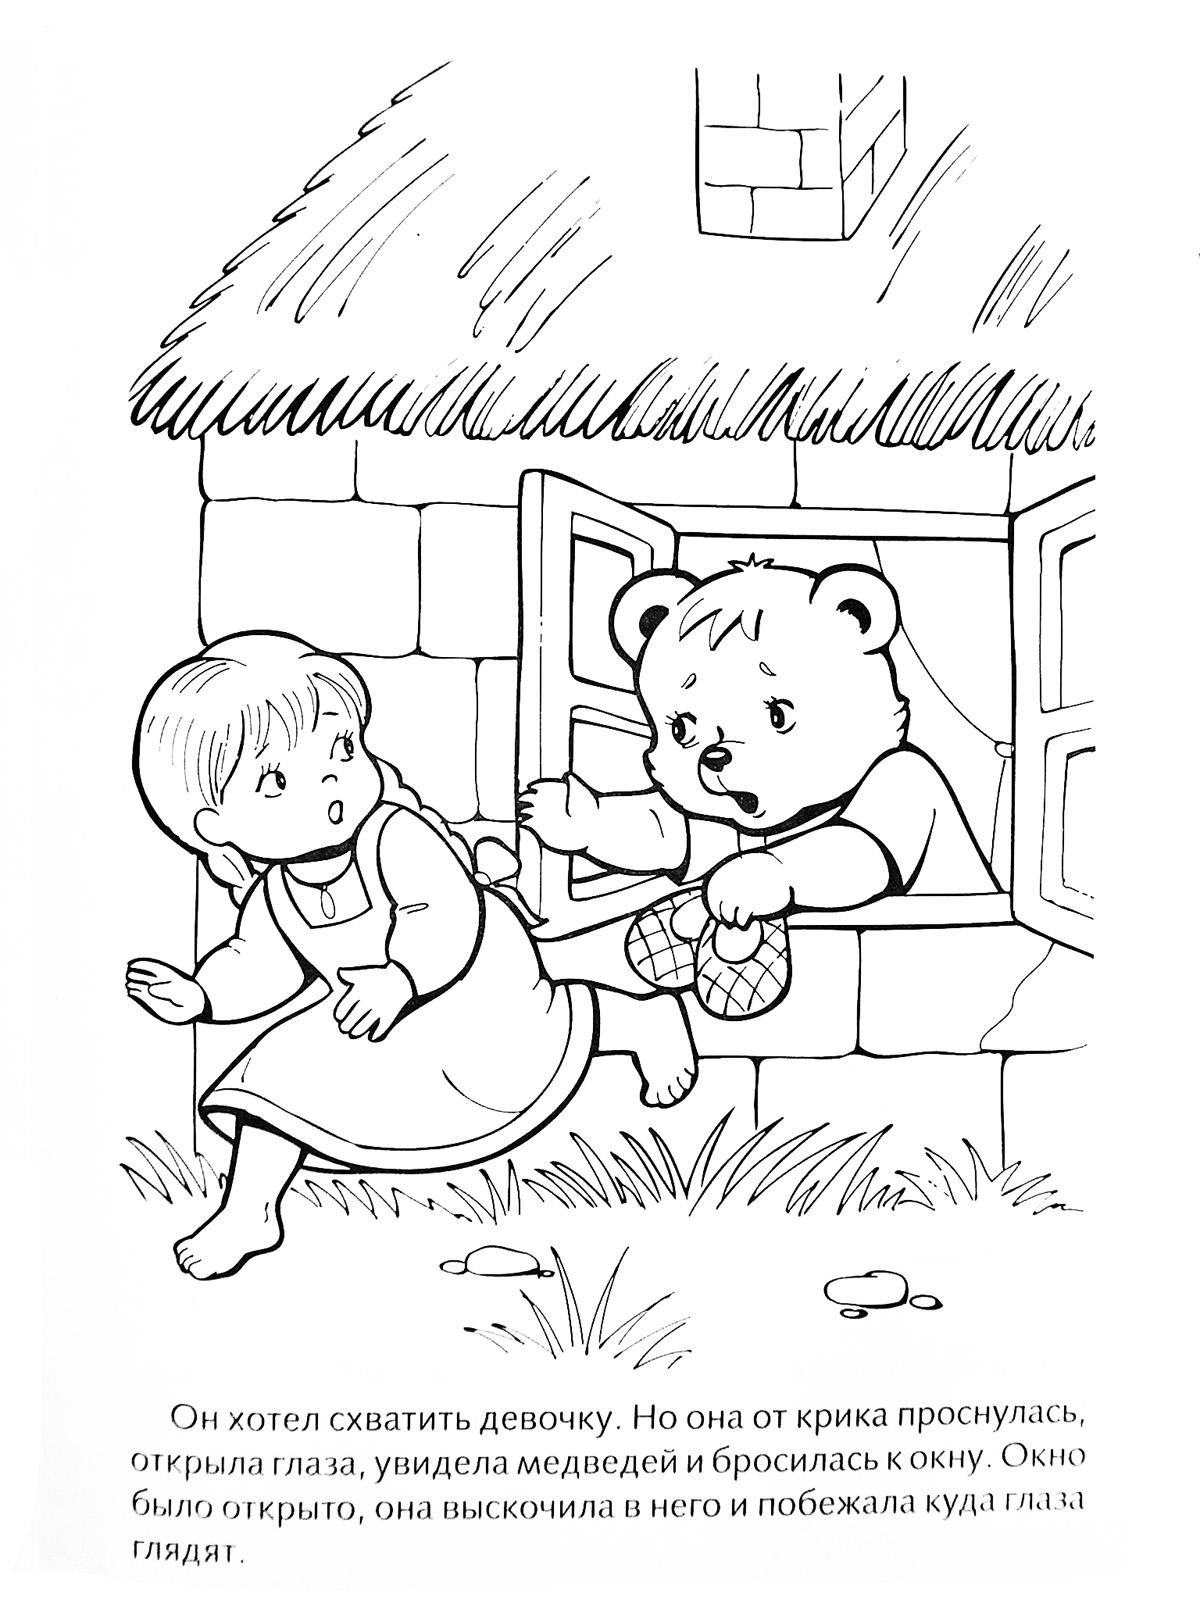 Coloring coloring pages to the tale of three bears girl runs away from the bear, three bears